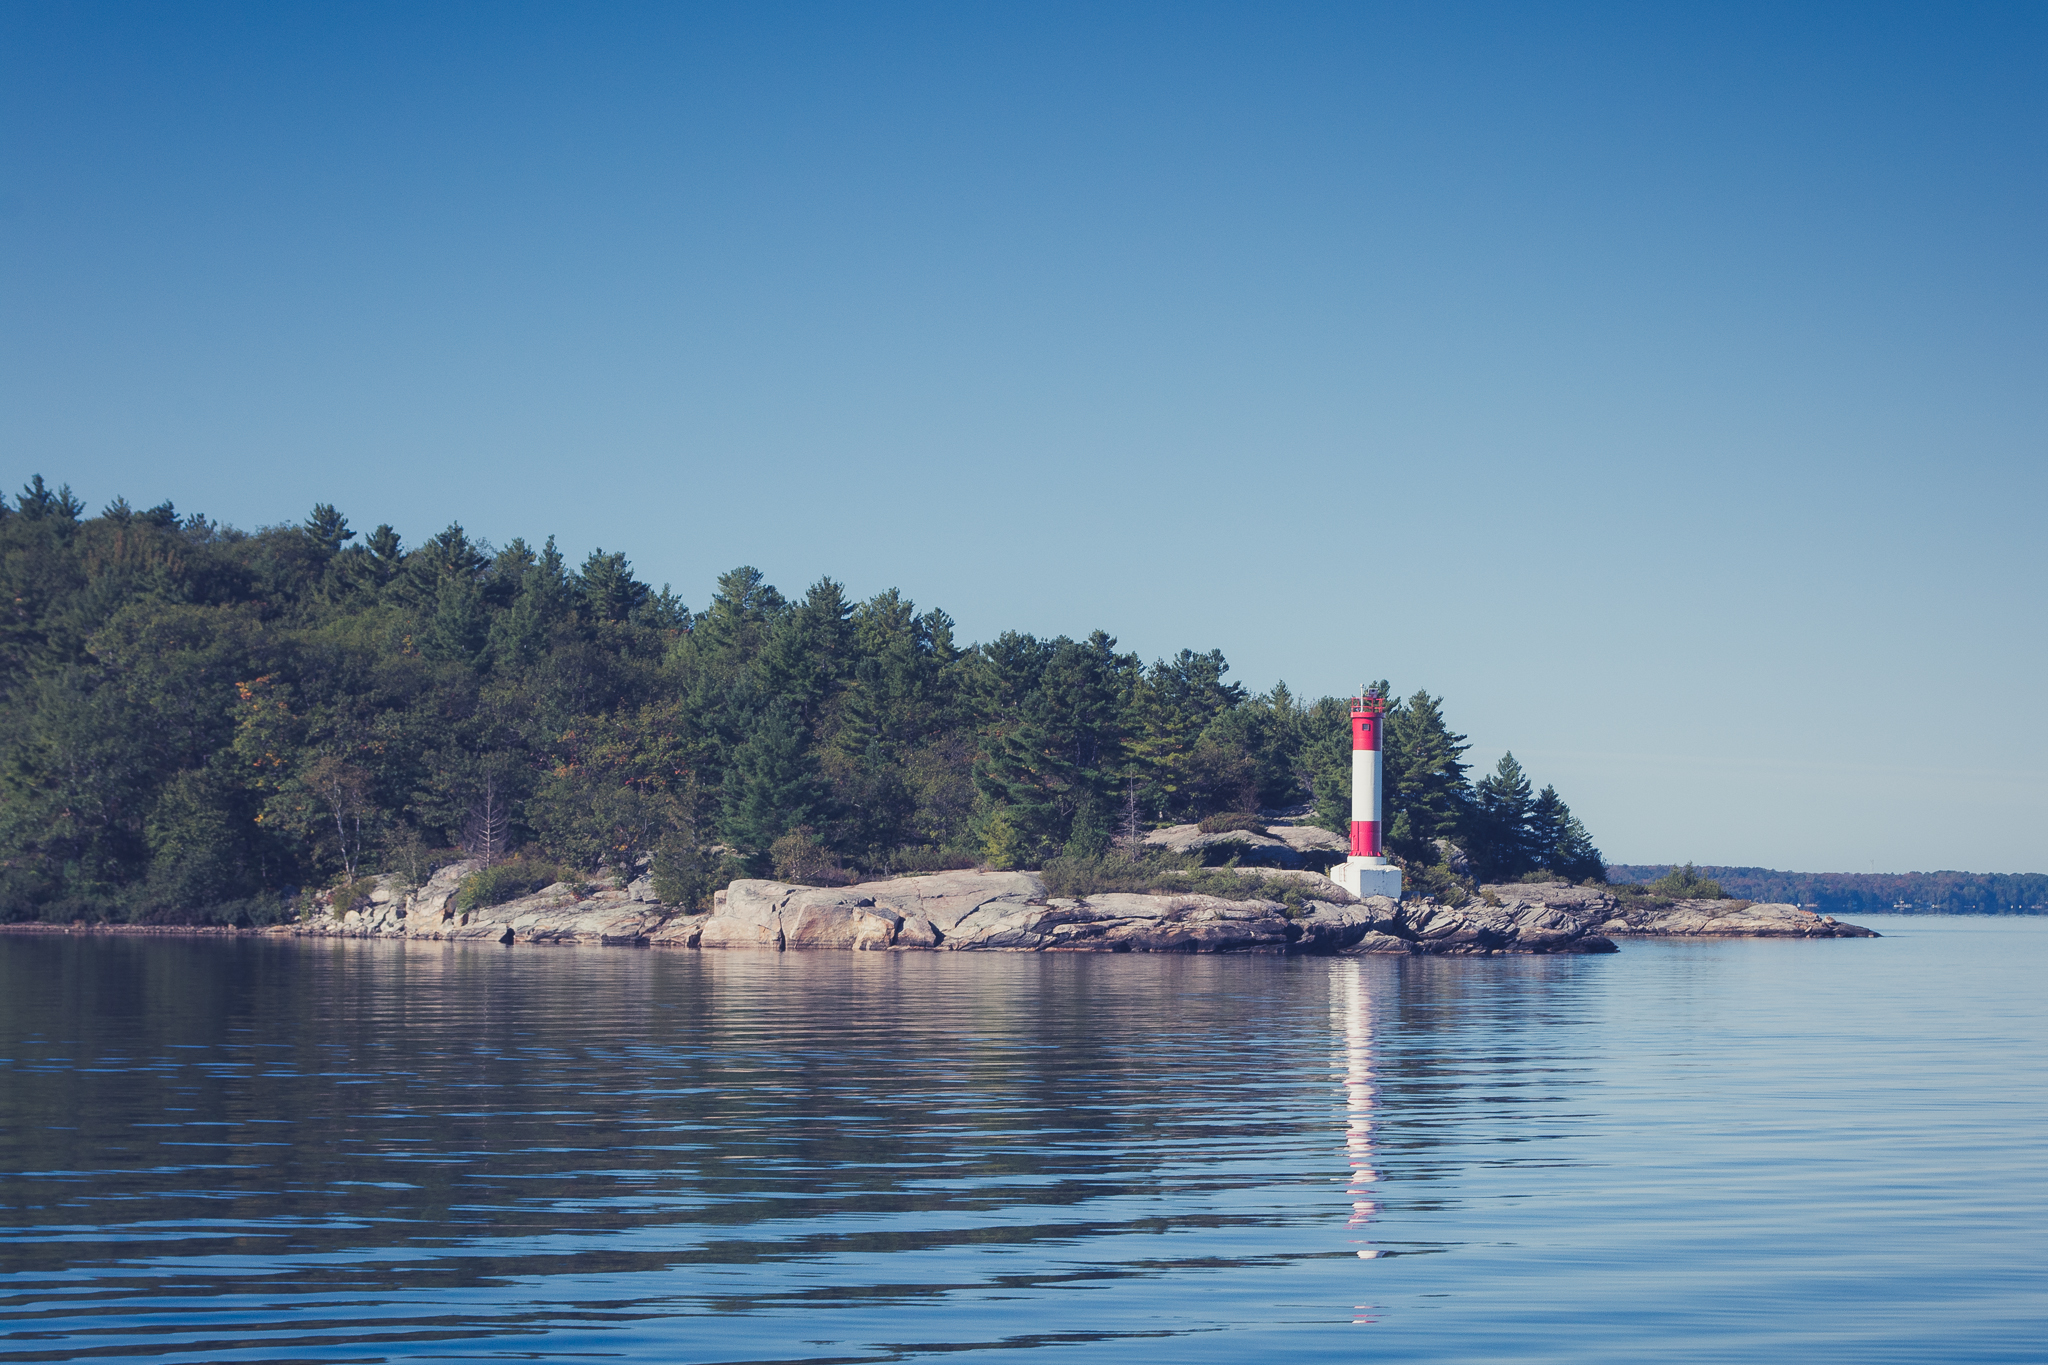 Lighthouse in Parry Sound (1/200s, f/11, ISO400)